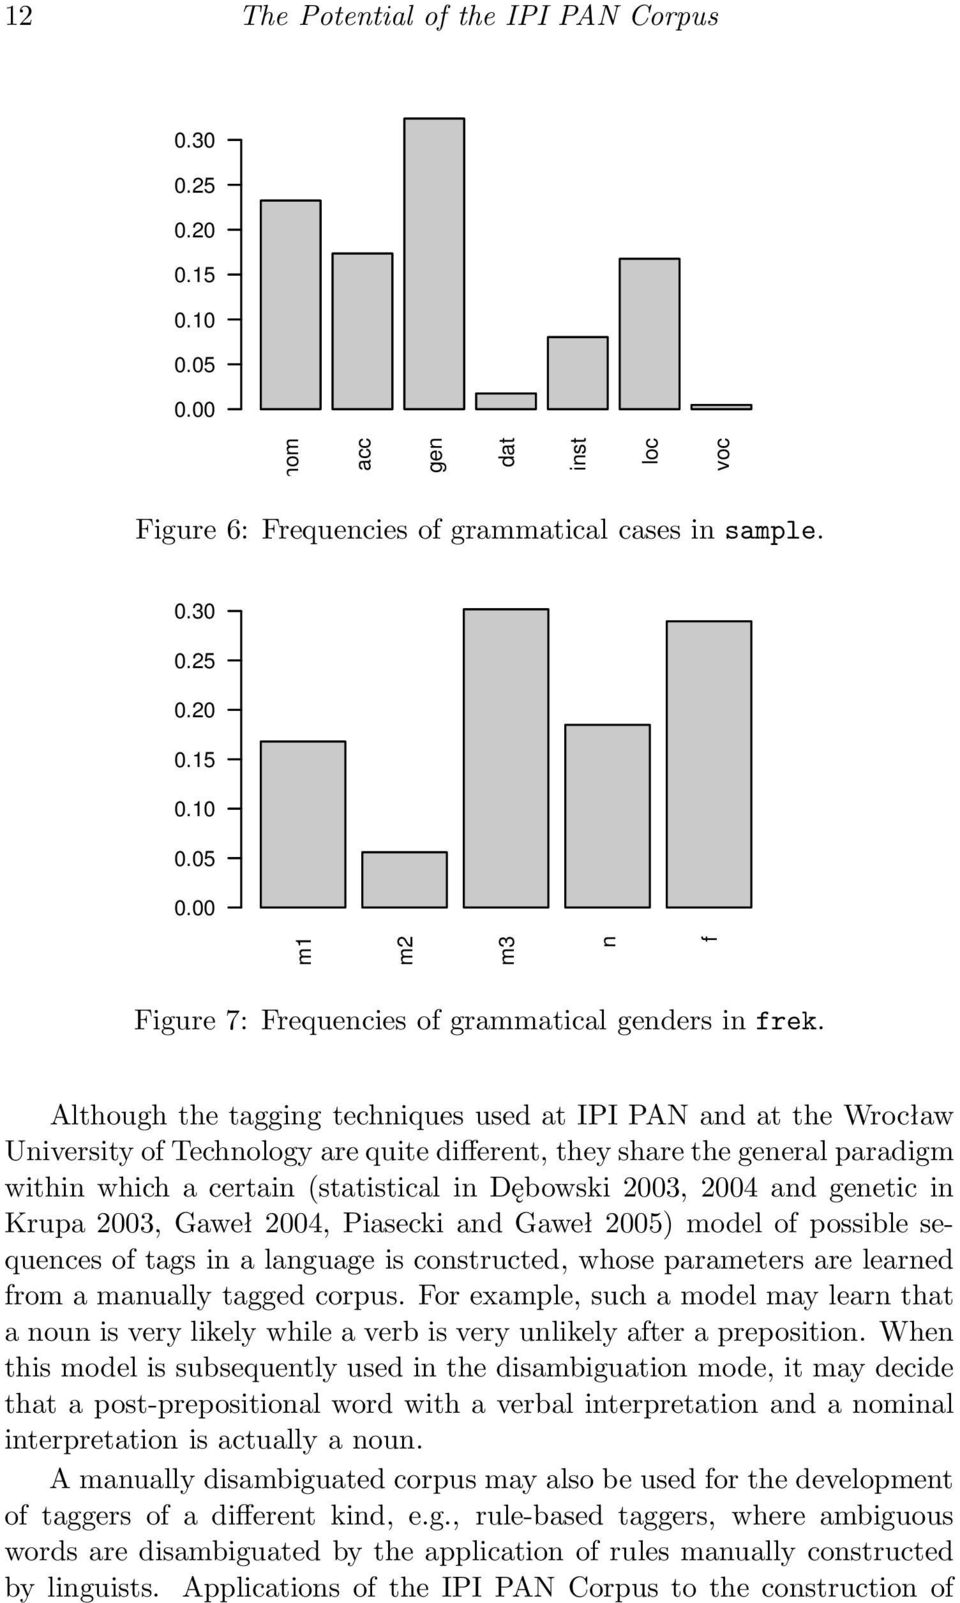 2004 and genetic in Krupa 2003, Gaweł 2004, Piasecki and Gaweł 2005) model of possible sequences of tags in a language is constructed, whose parameters are learned from a manually tagged corpus.